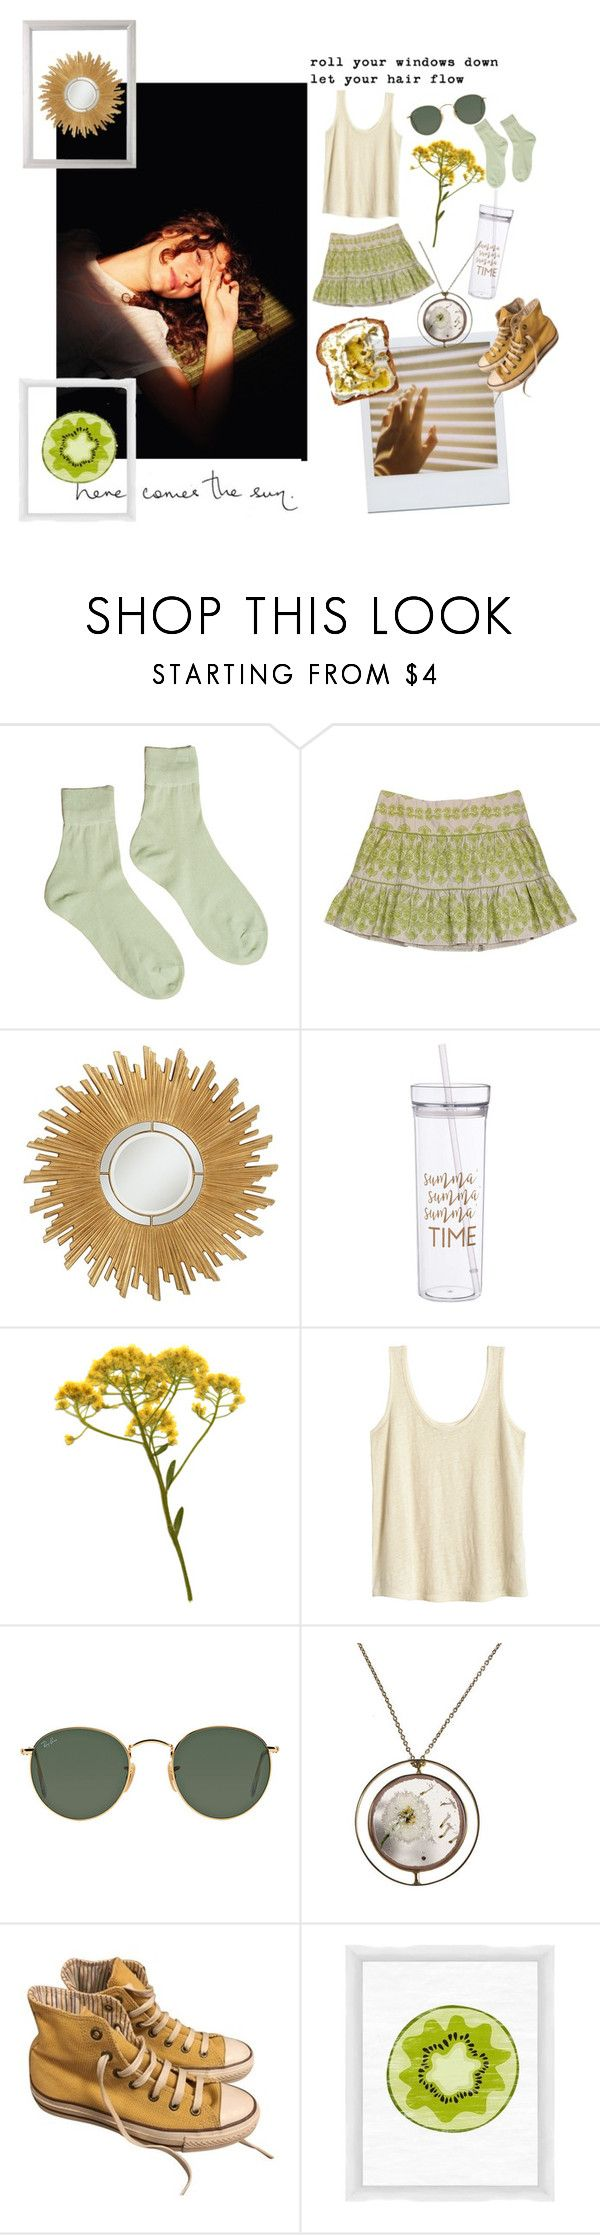 """""""Sunny days"""" by pisces06-03-01 ❤ liked on Polyvore featuring Hansel from Basel, Nanette Lepore, Universal Lighting and Decor, Ray-Ban, Converse and PTM Images"""